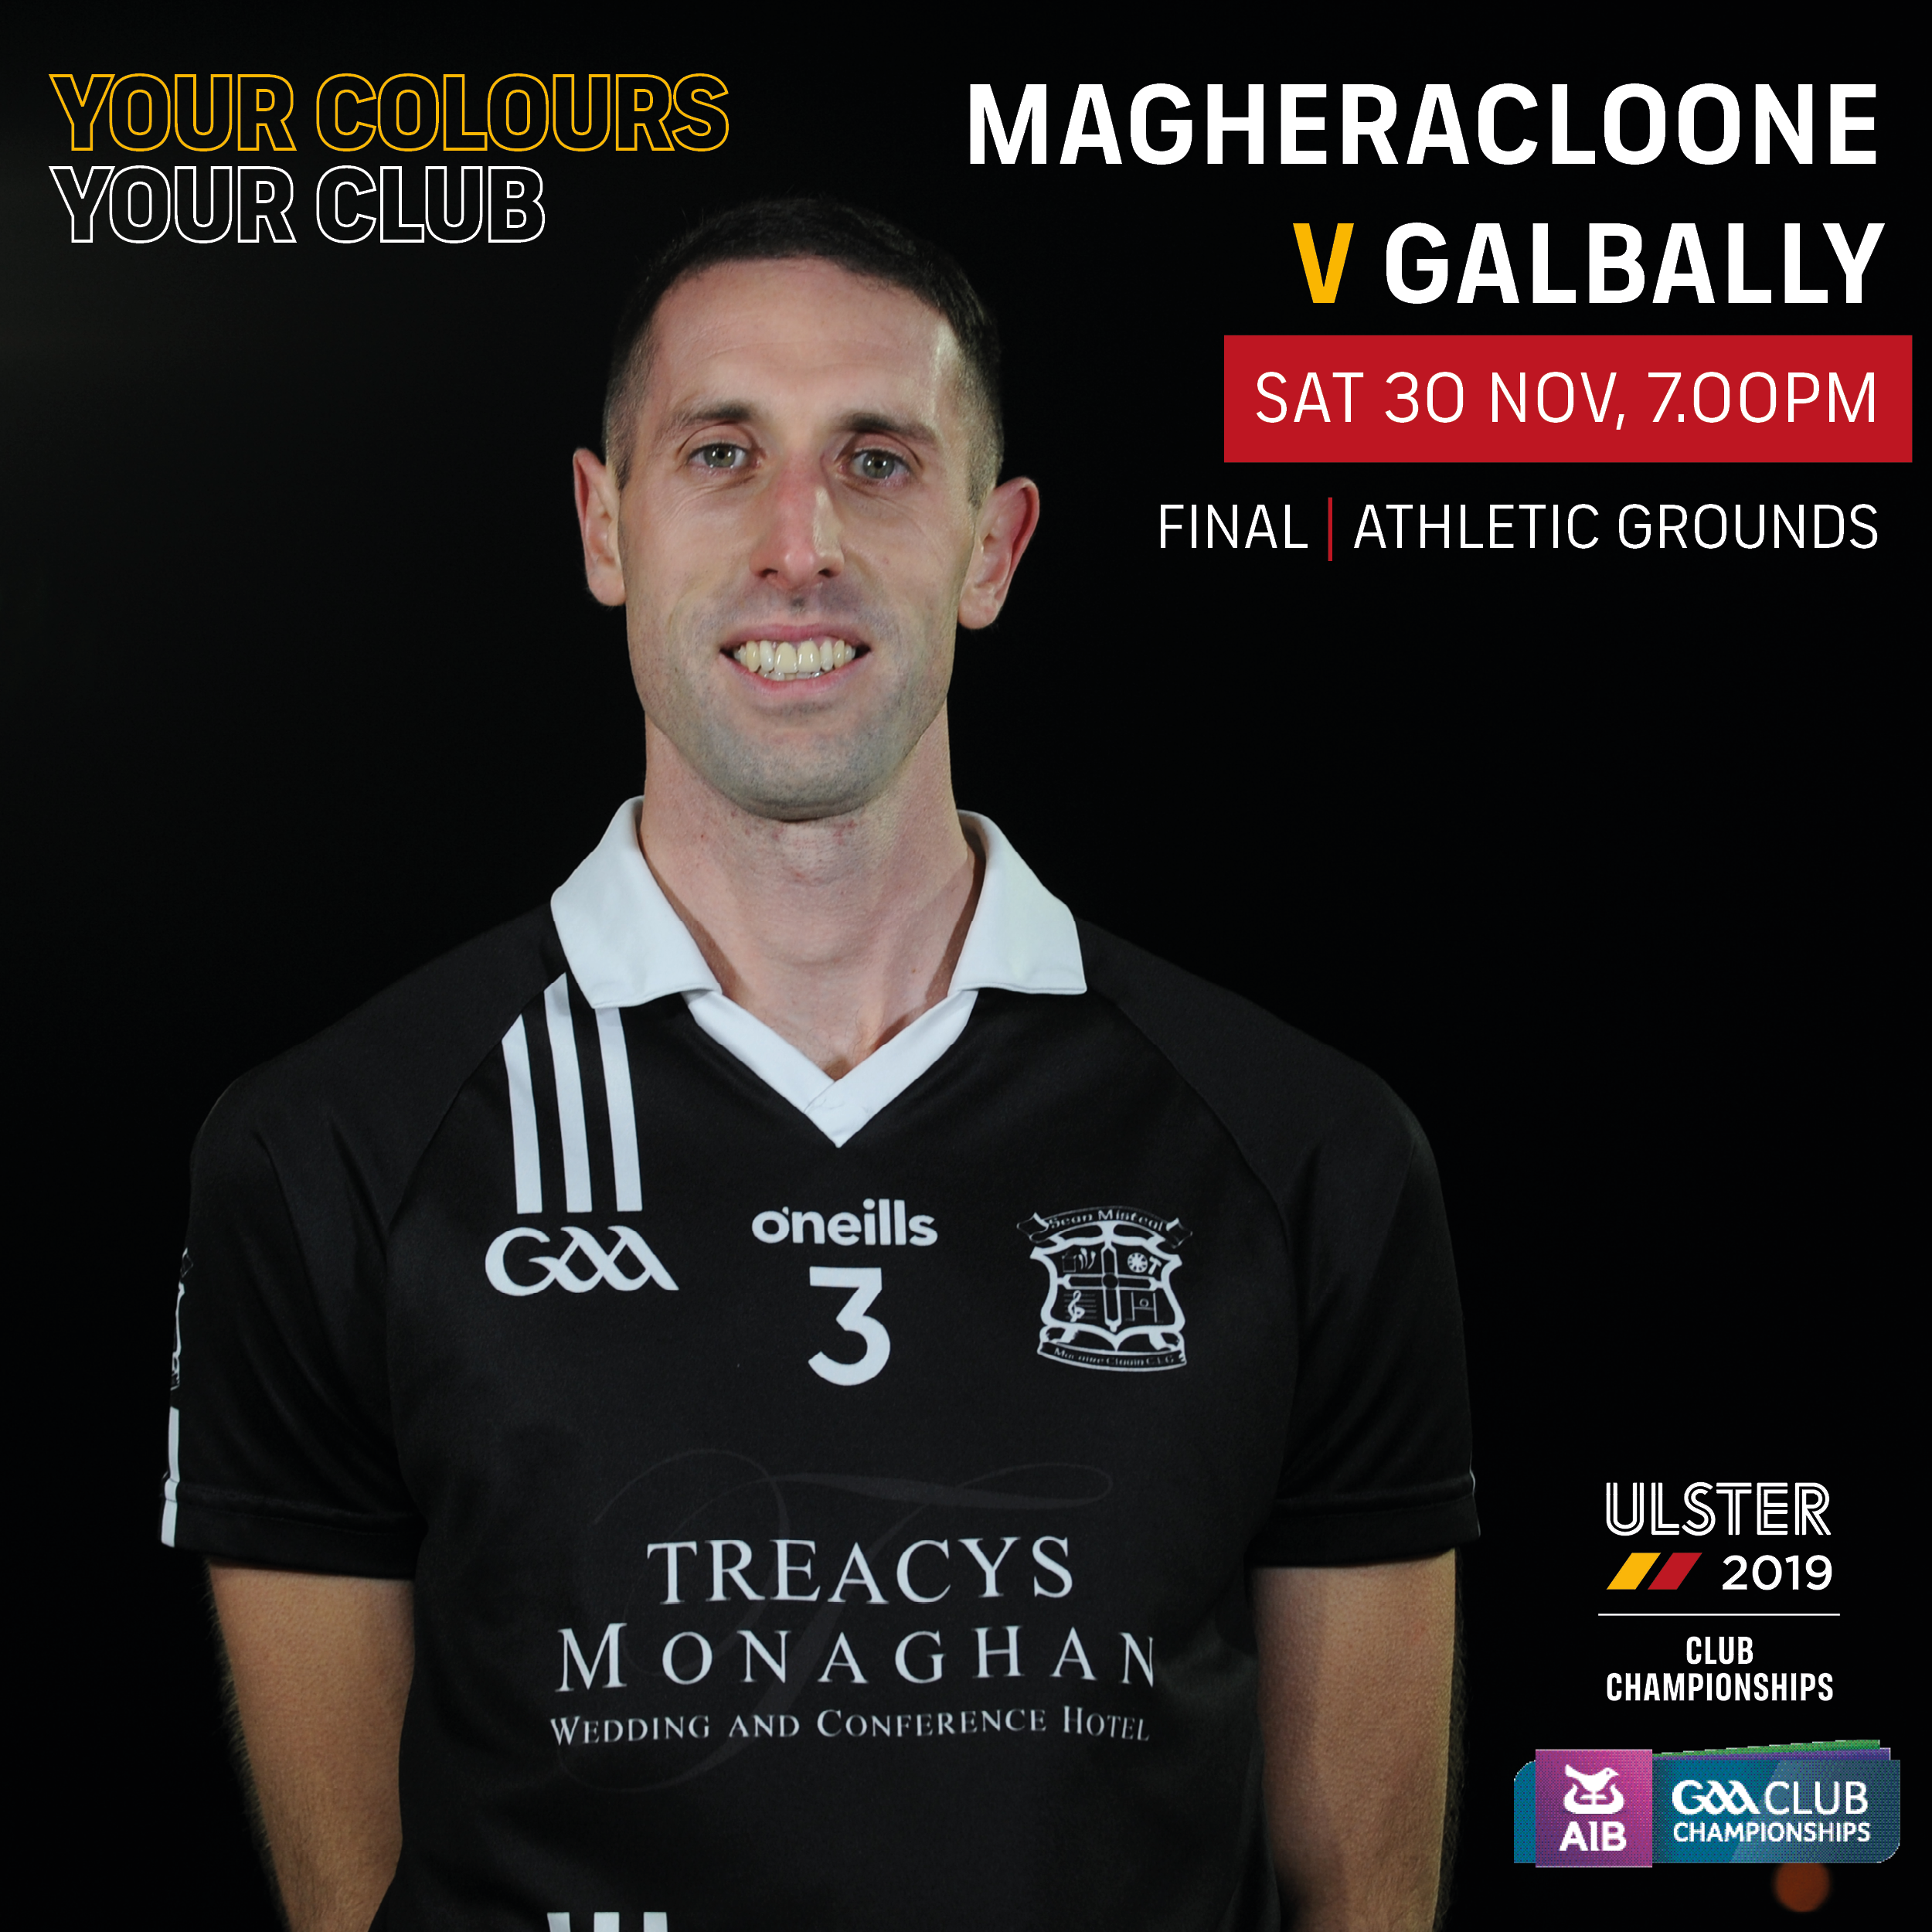 Countdown is on…. AIB Ulster Intermediate Club Final Magheracloone V Galbally this Saturday